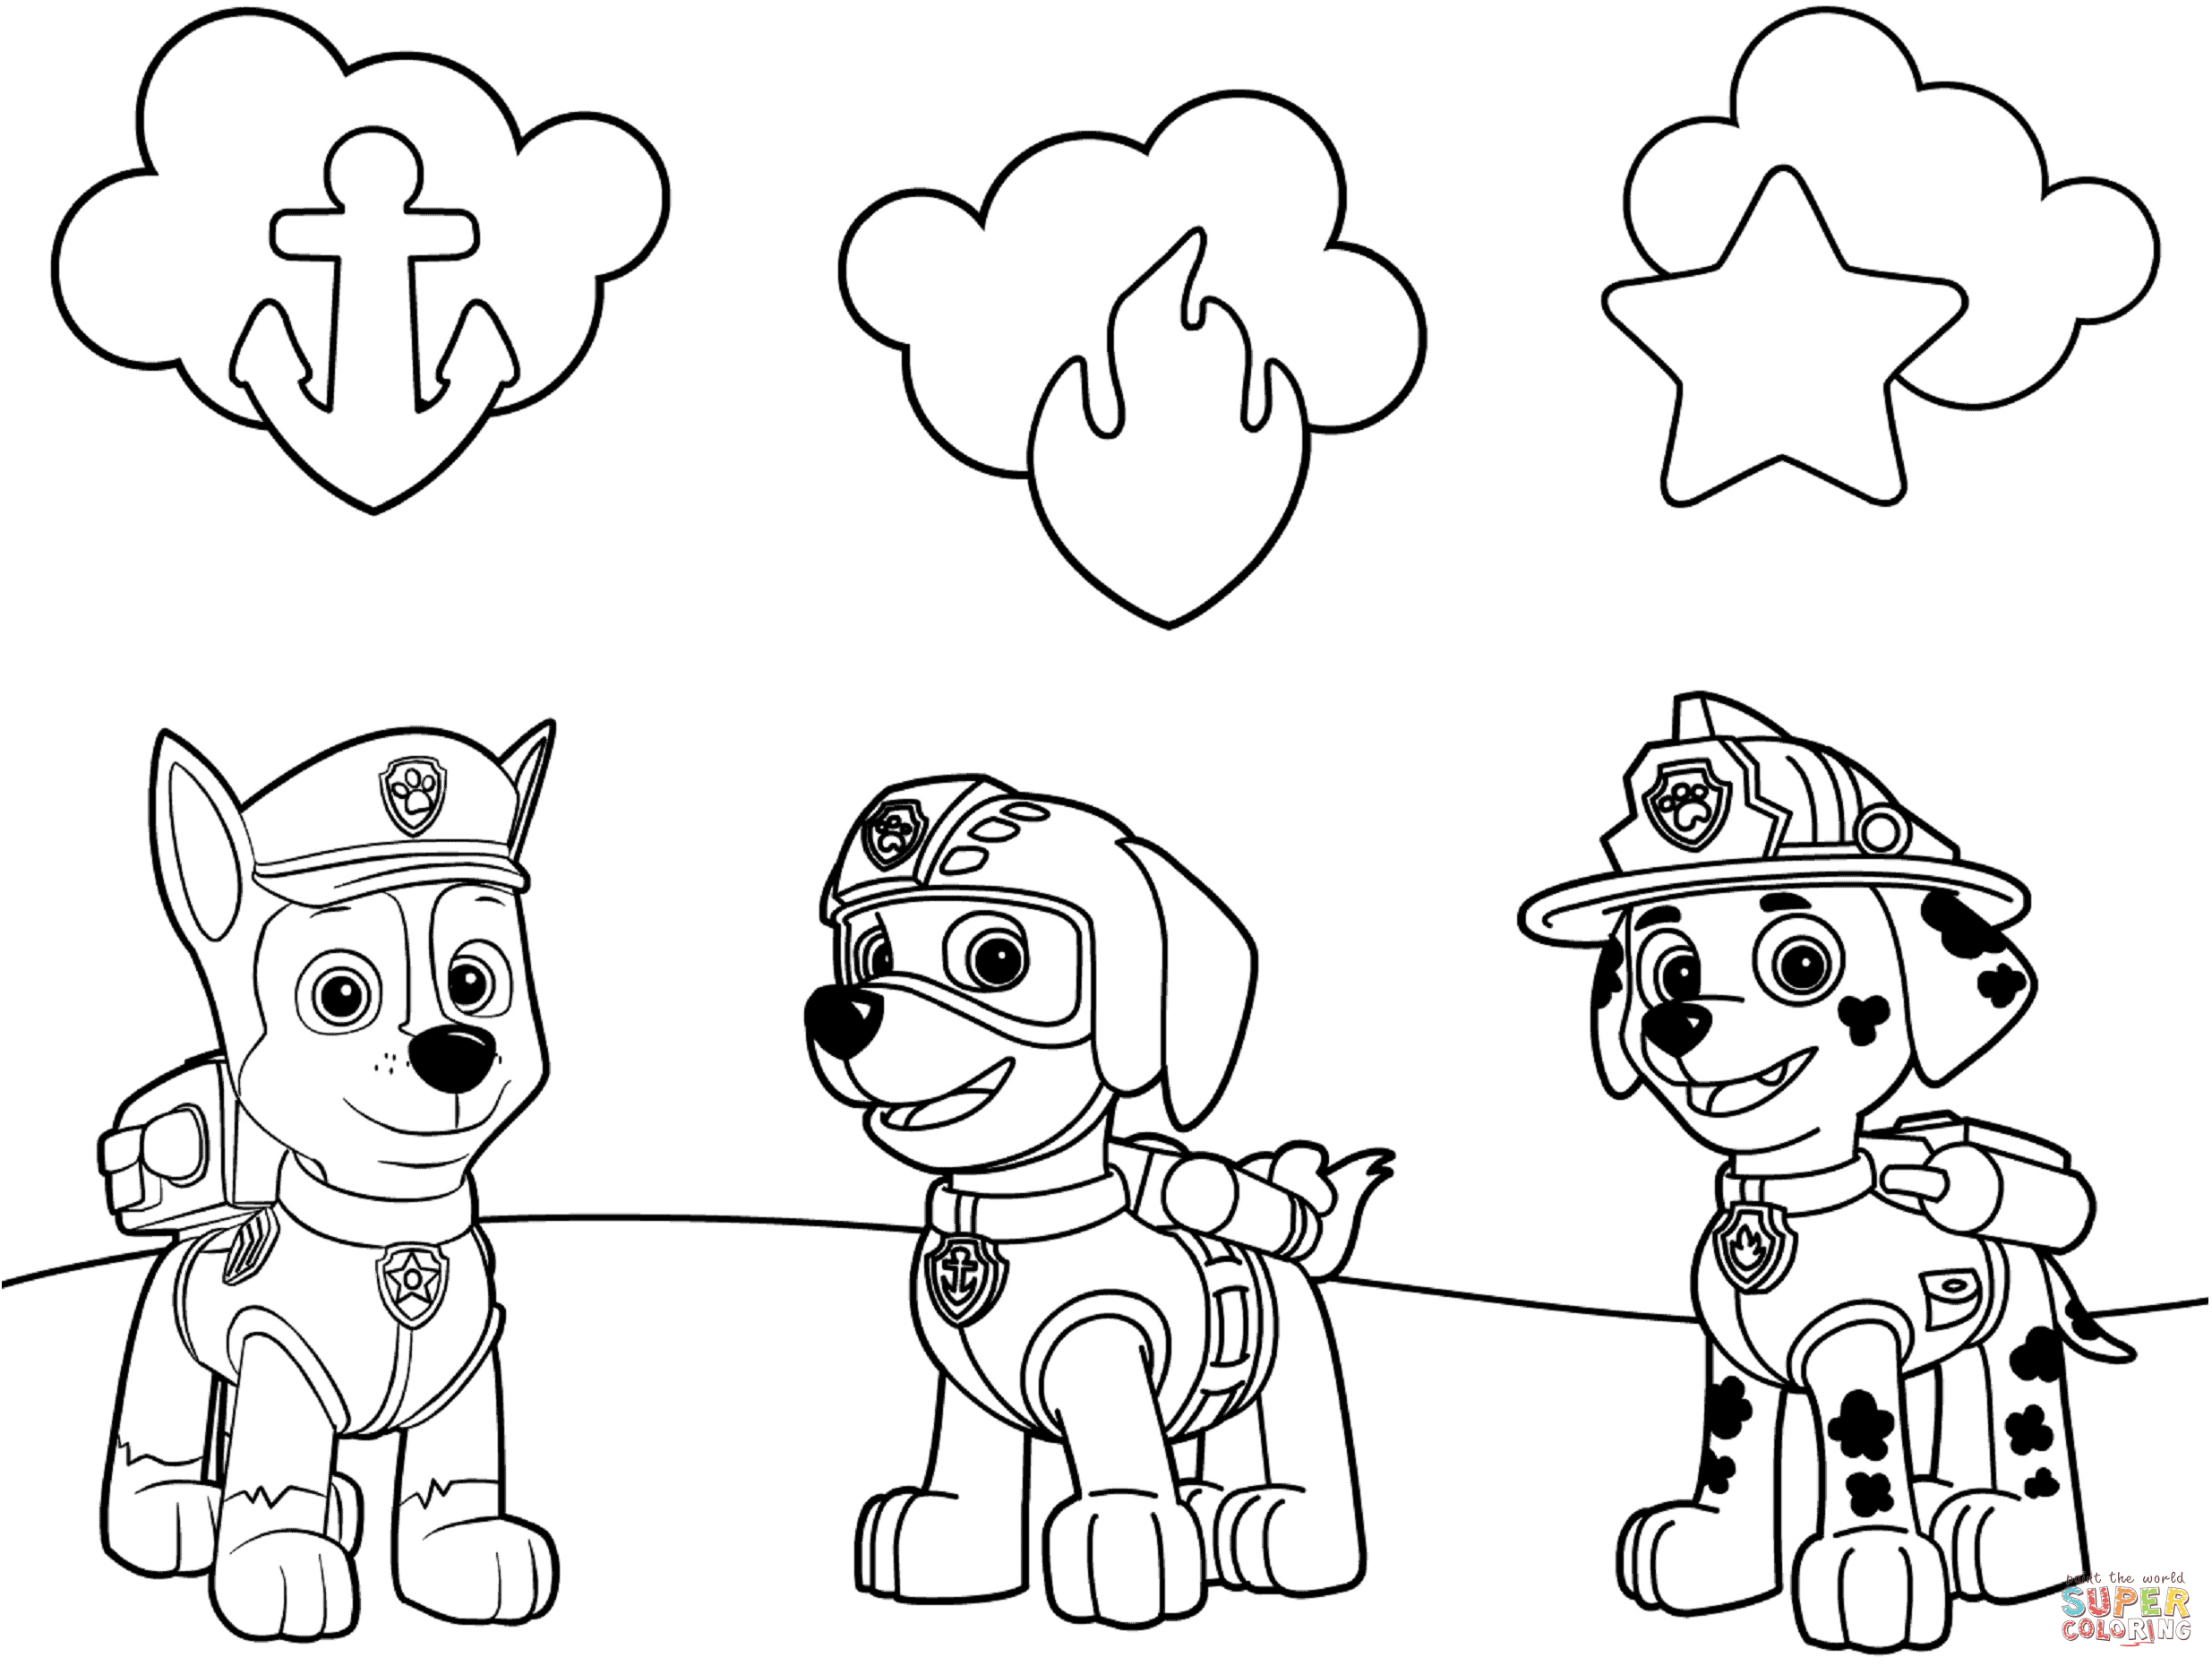 paw patrol badges coloring page | free printable coloring pages ... - Firefighter Badges Coloring Pages